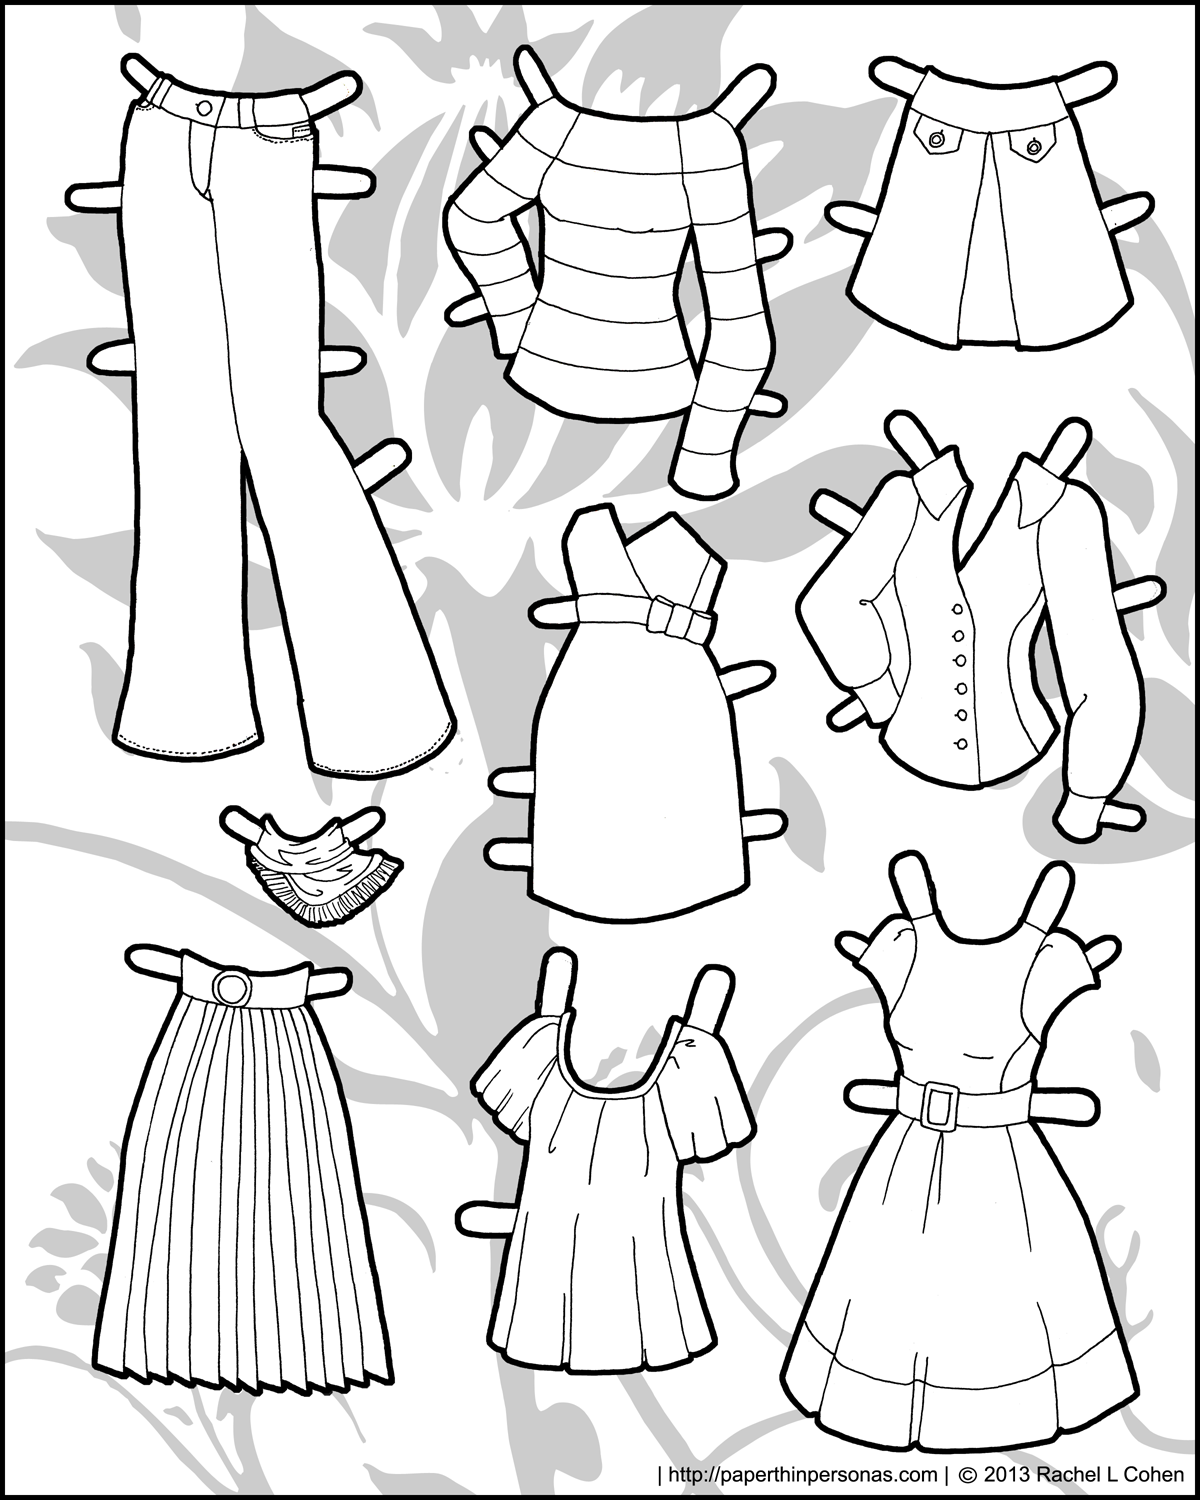 6 Images of Printable Doll Clothes